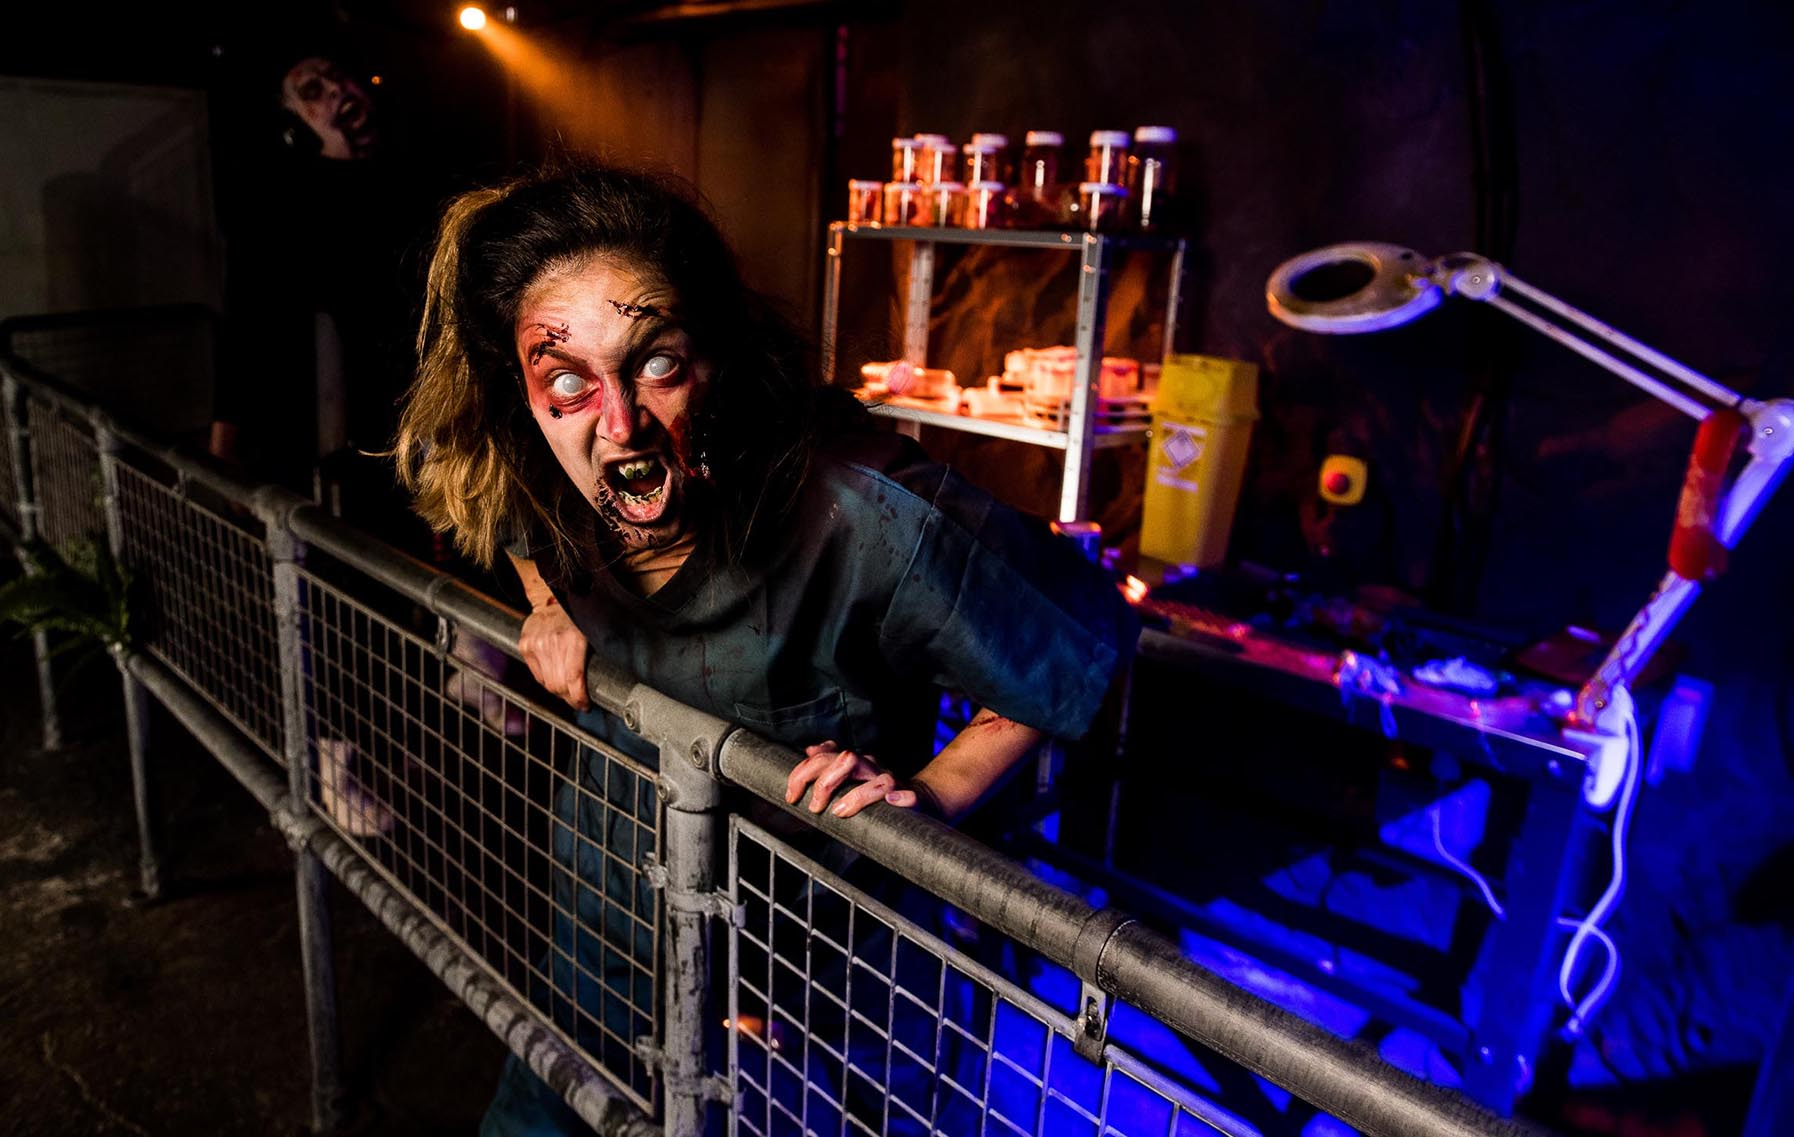 A zombie character performs at Alton Towers' Scarefest